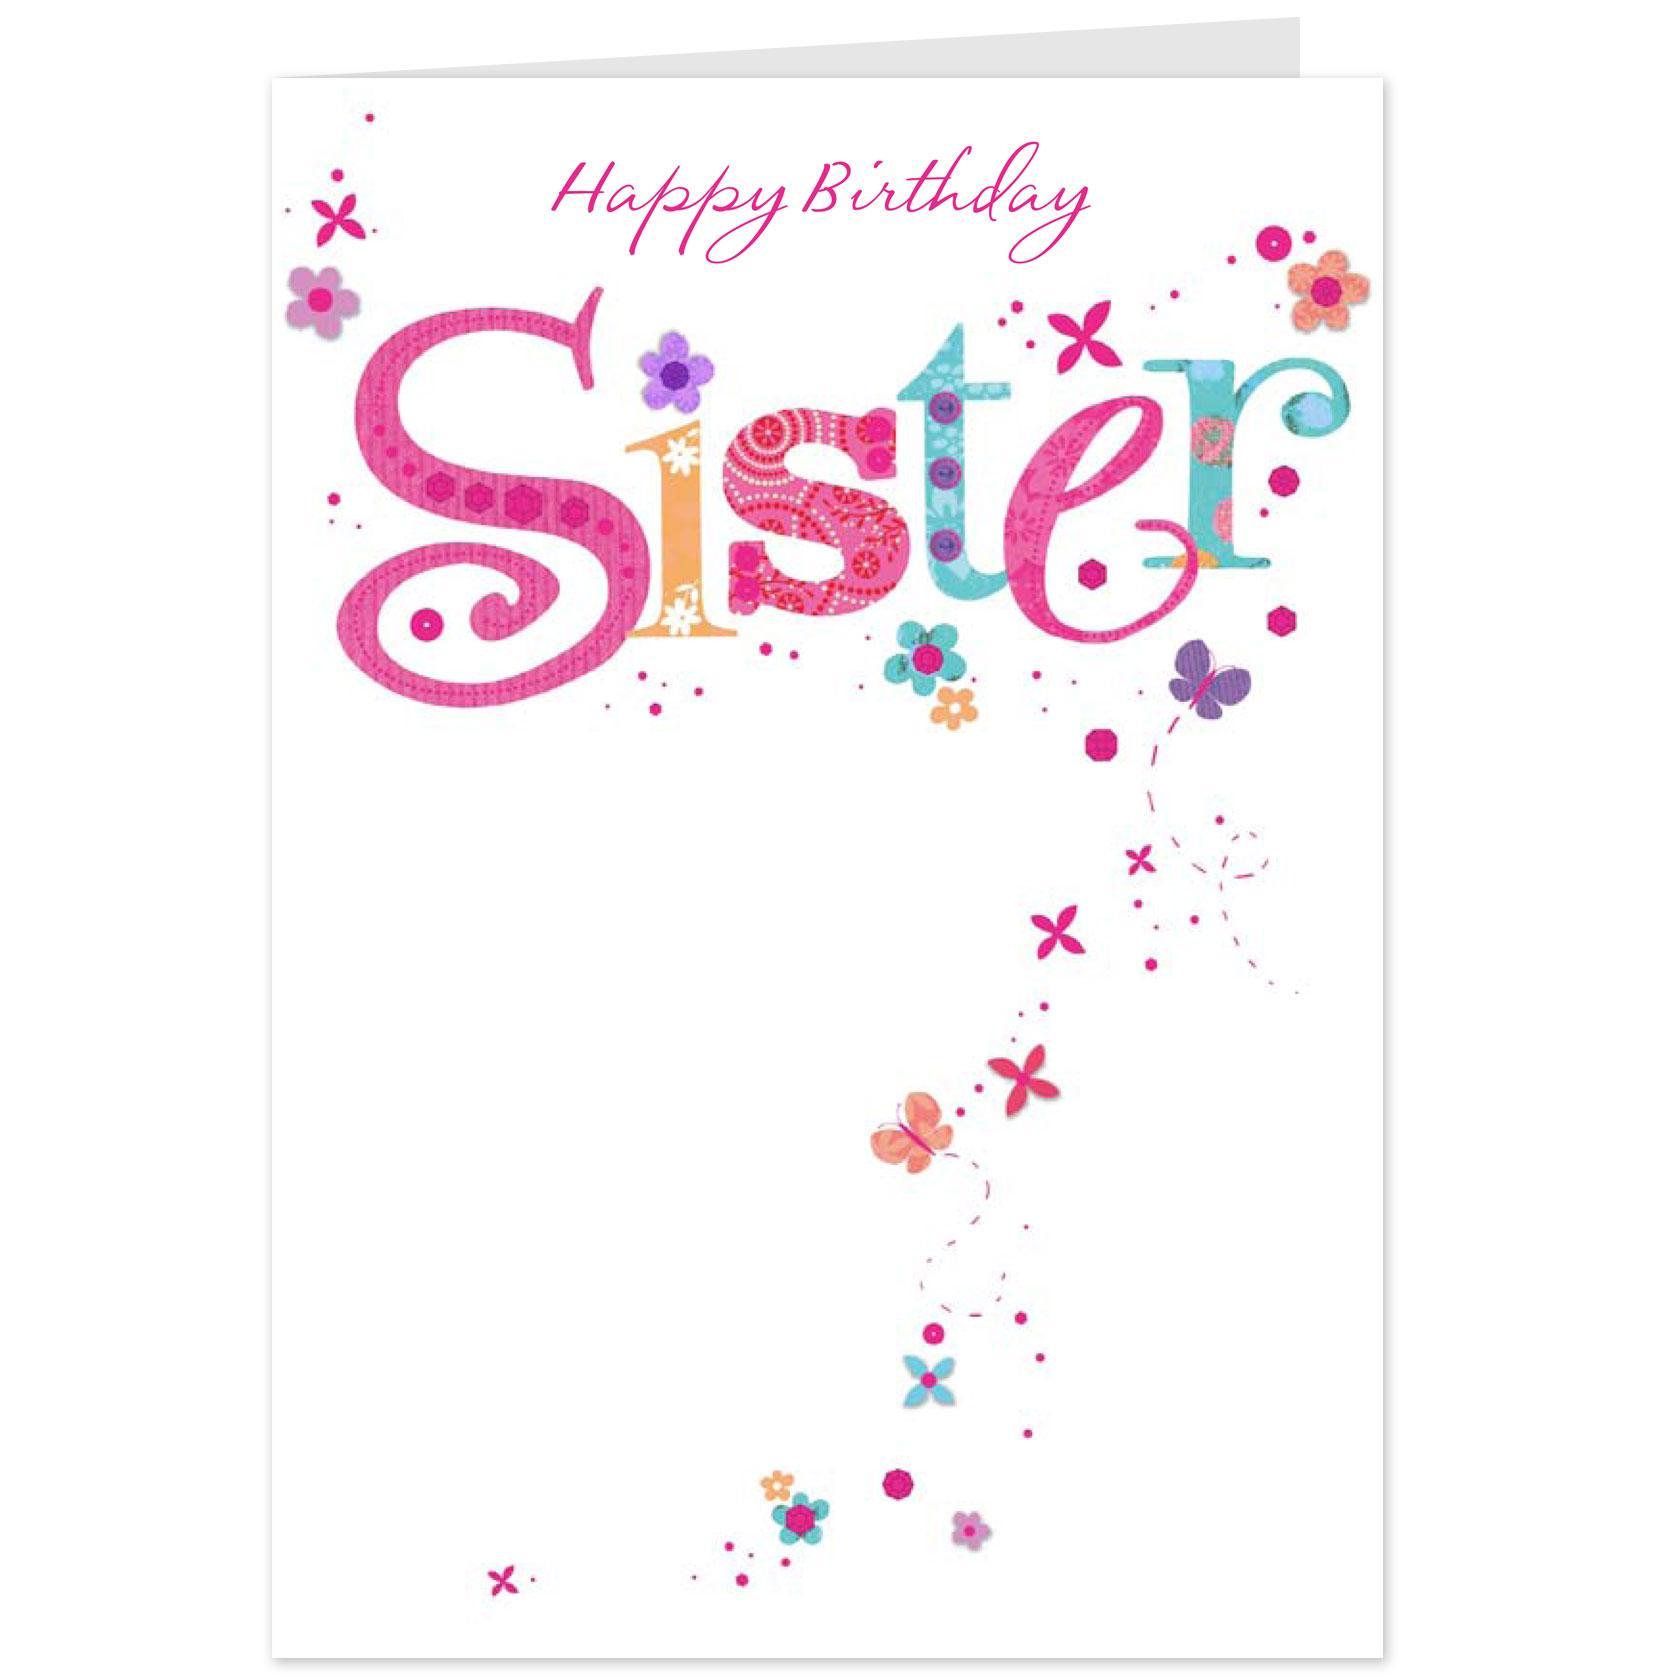 happy birthday wishes card for sister ; Happy-Birthday-Sister-Greeting-Card-For-You-Graphic